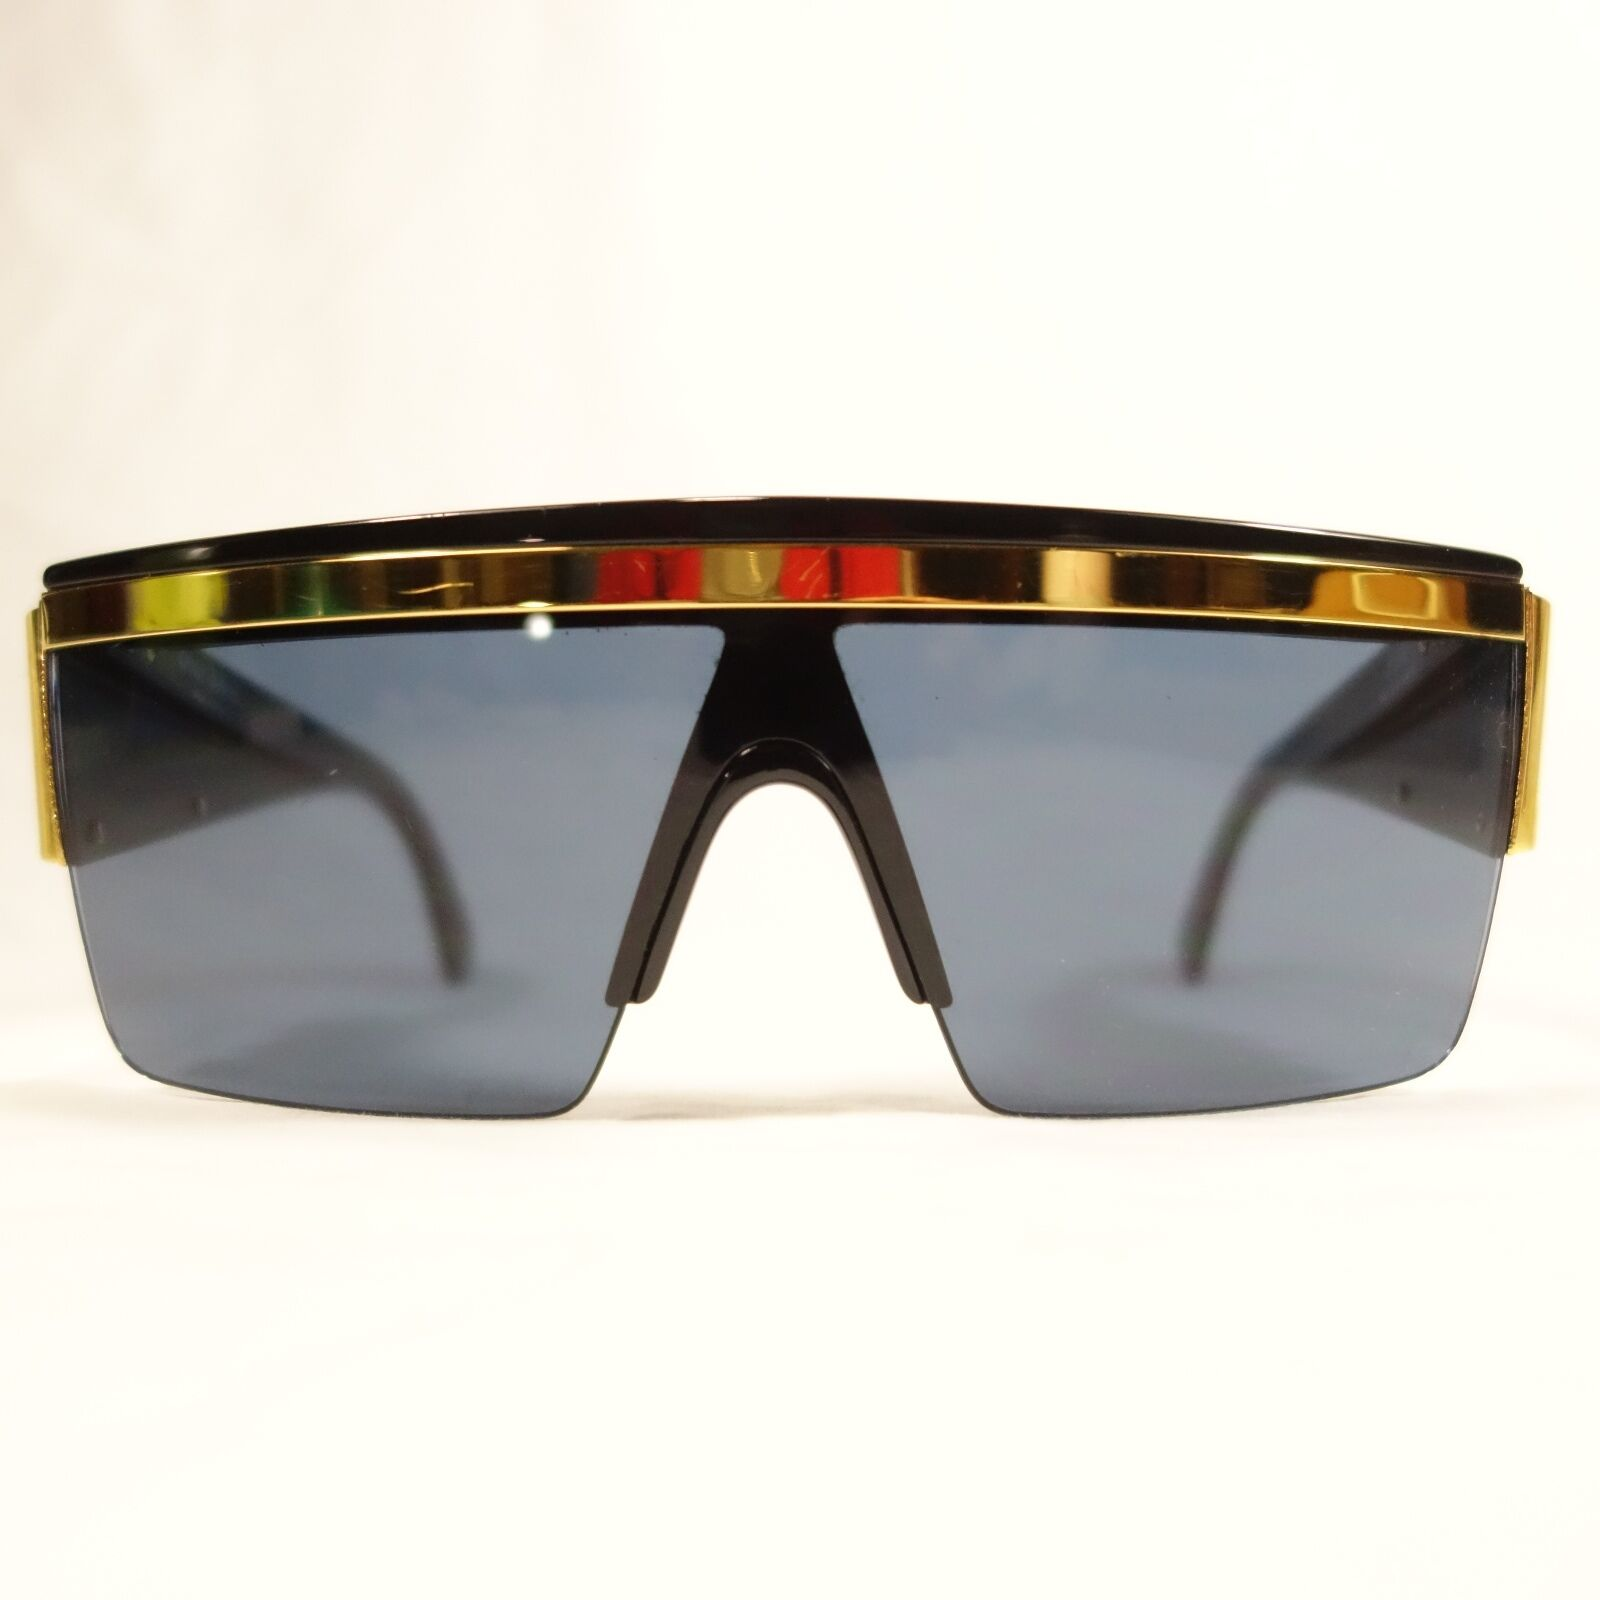 Authentic Rare Gianni Versace UPDATE MOD Z76 852 GY Vintage ...